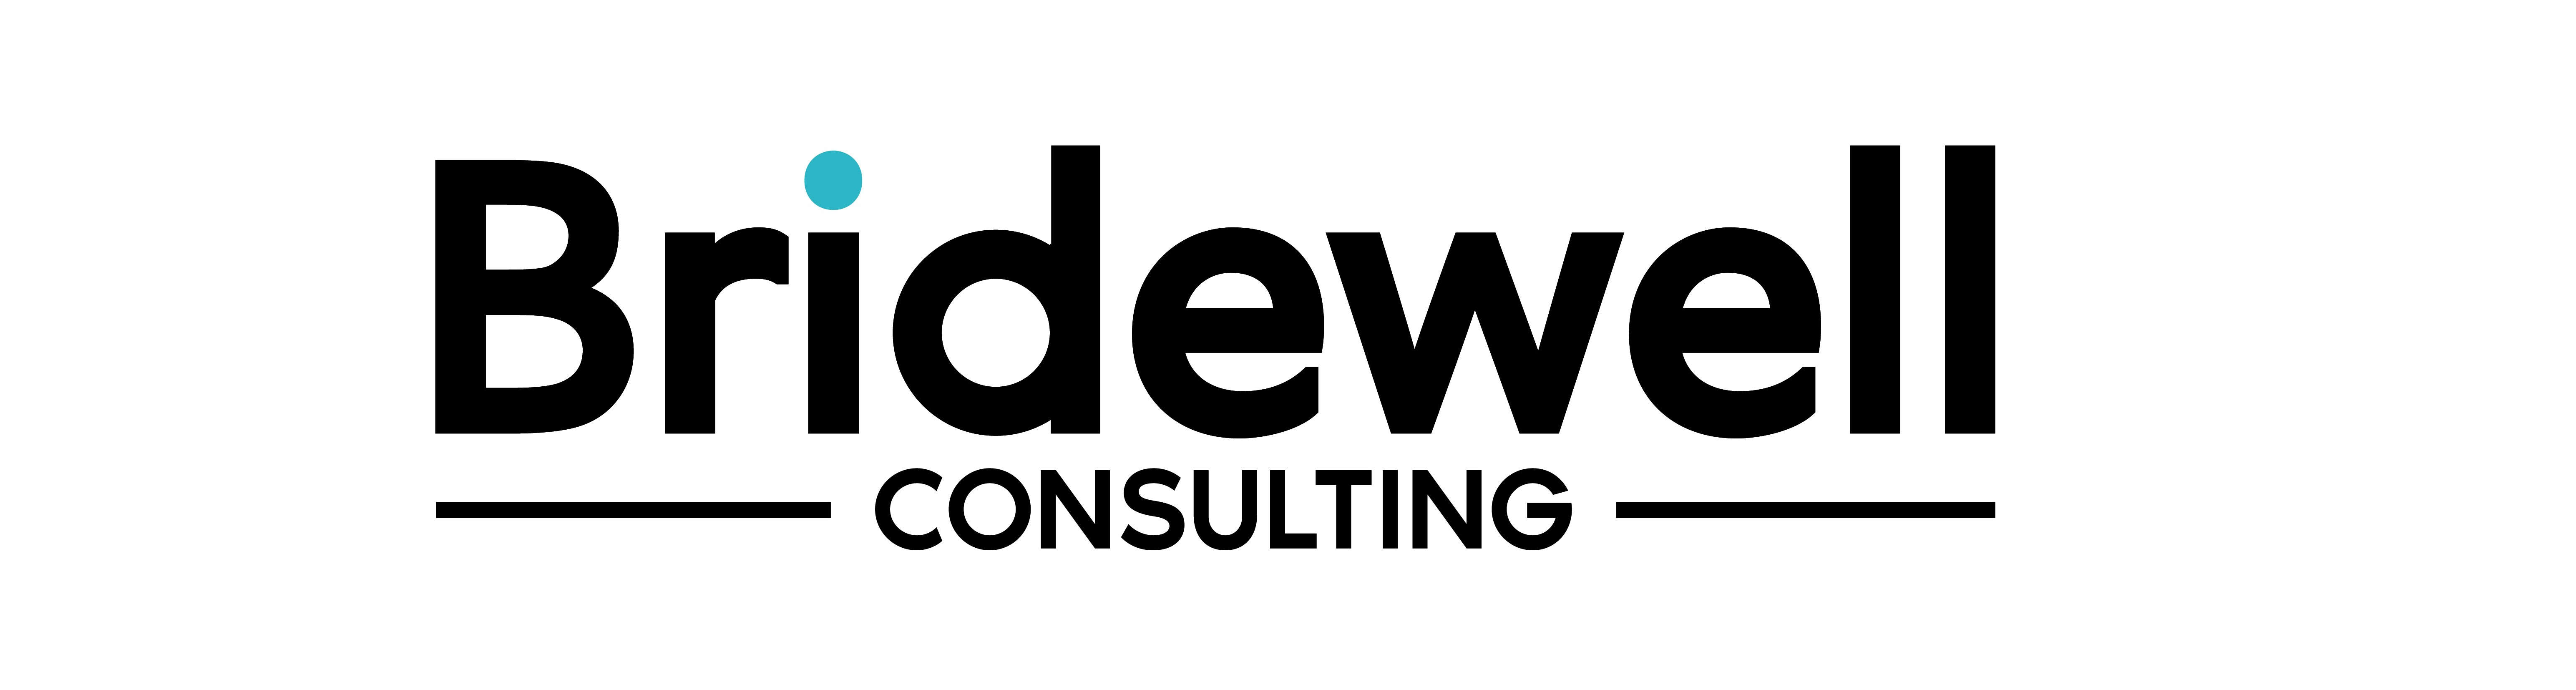 Bridewell Consulting Makes Senior Appointments To Support Business Growth